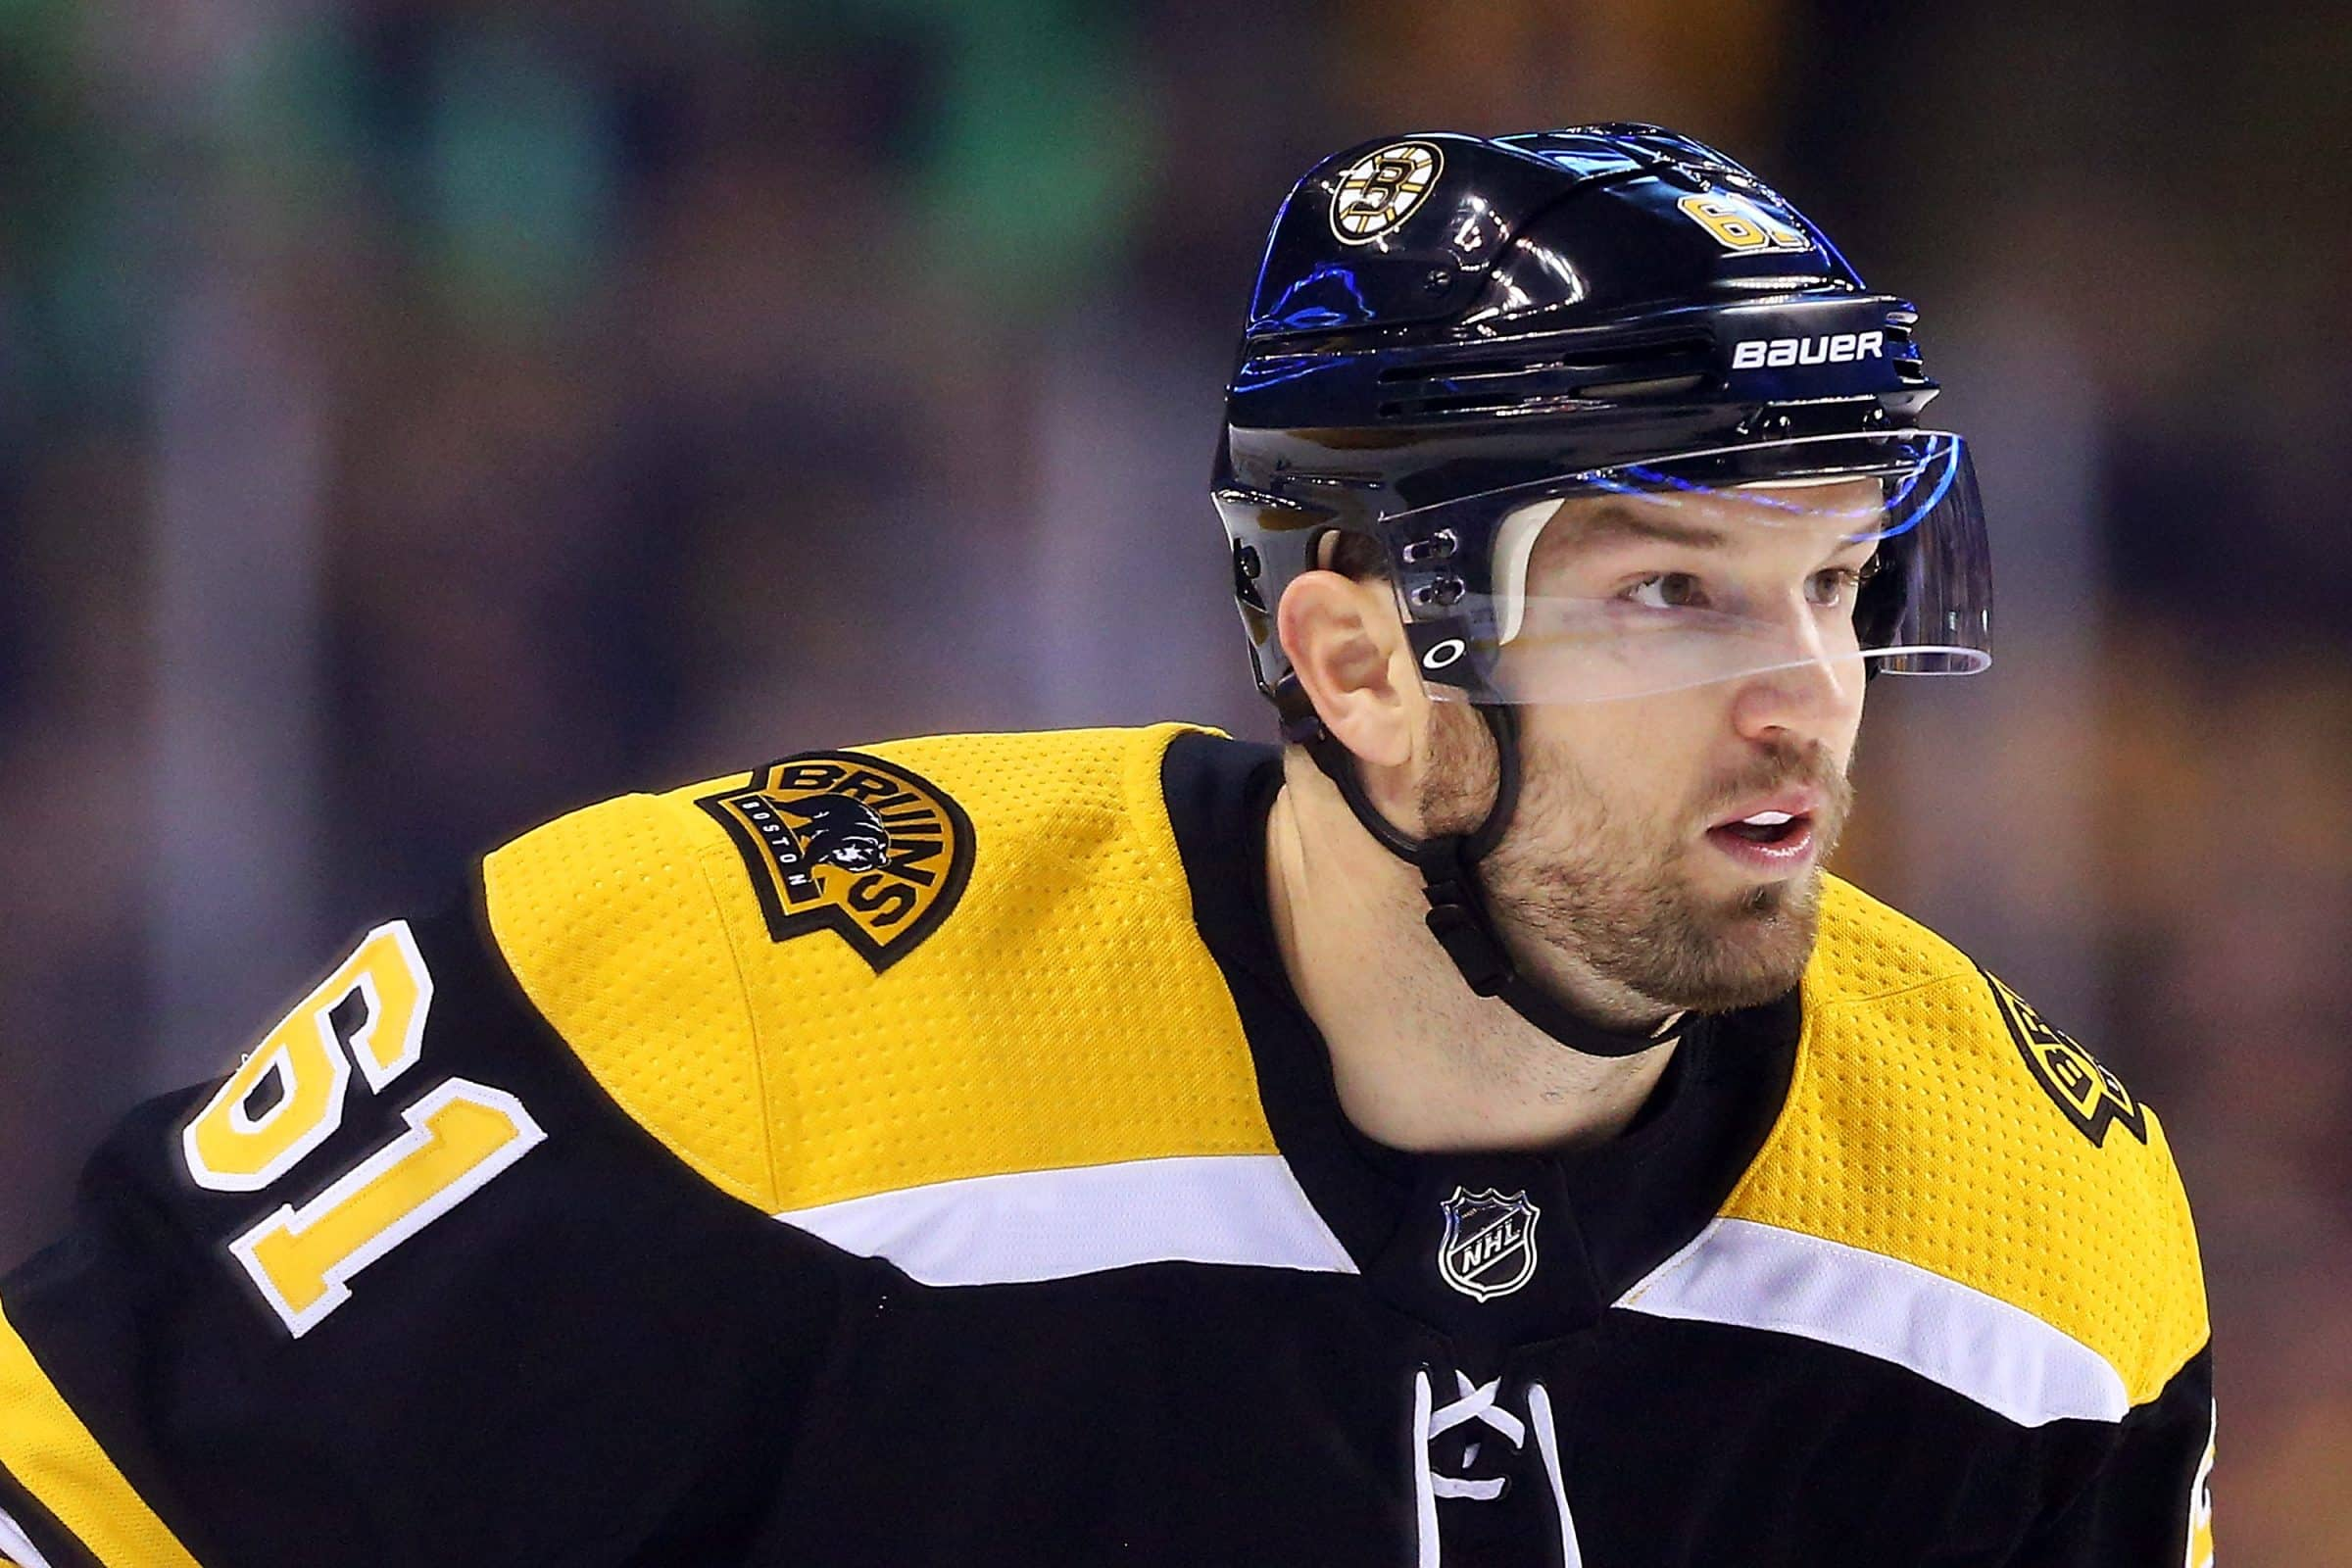 Rick Nash should stay away from Broadway